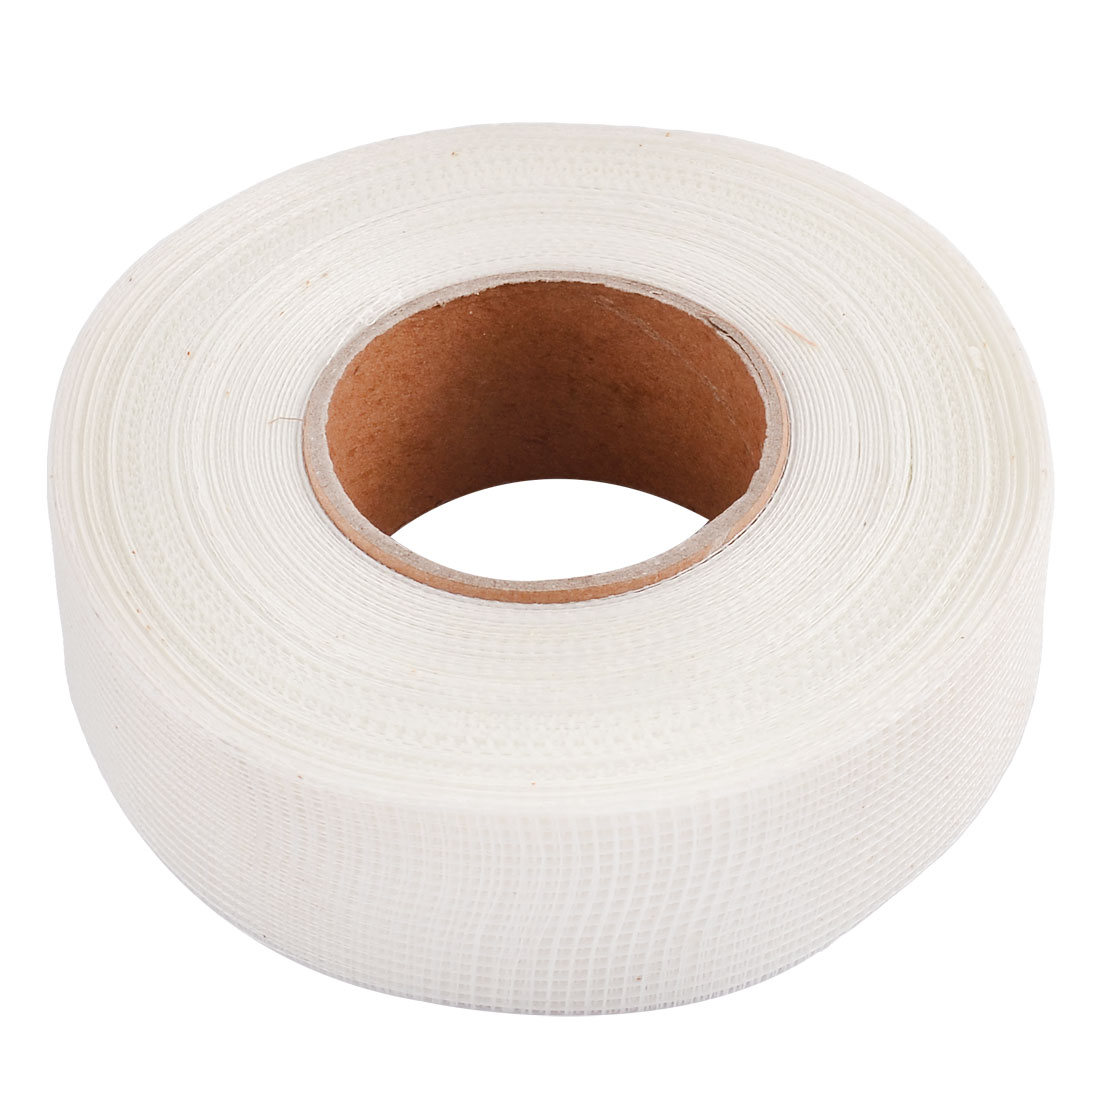 Drywall Paper Tape Unique Bargains Sheetrock Drywall Fiberglass Cloth Wall Repair Fabric Mesh Joint Tape Roll